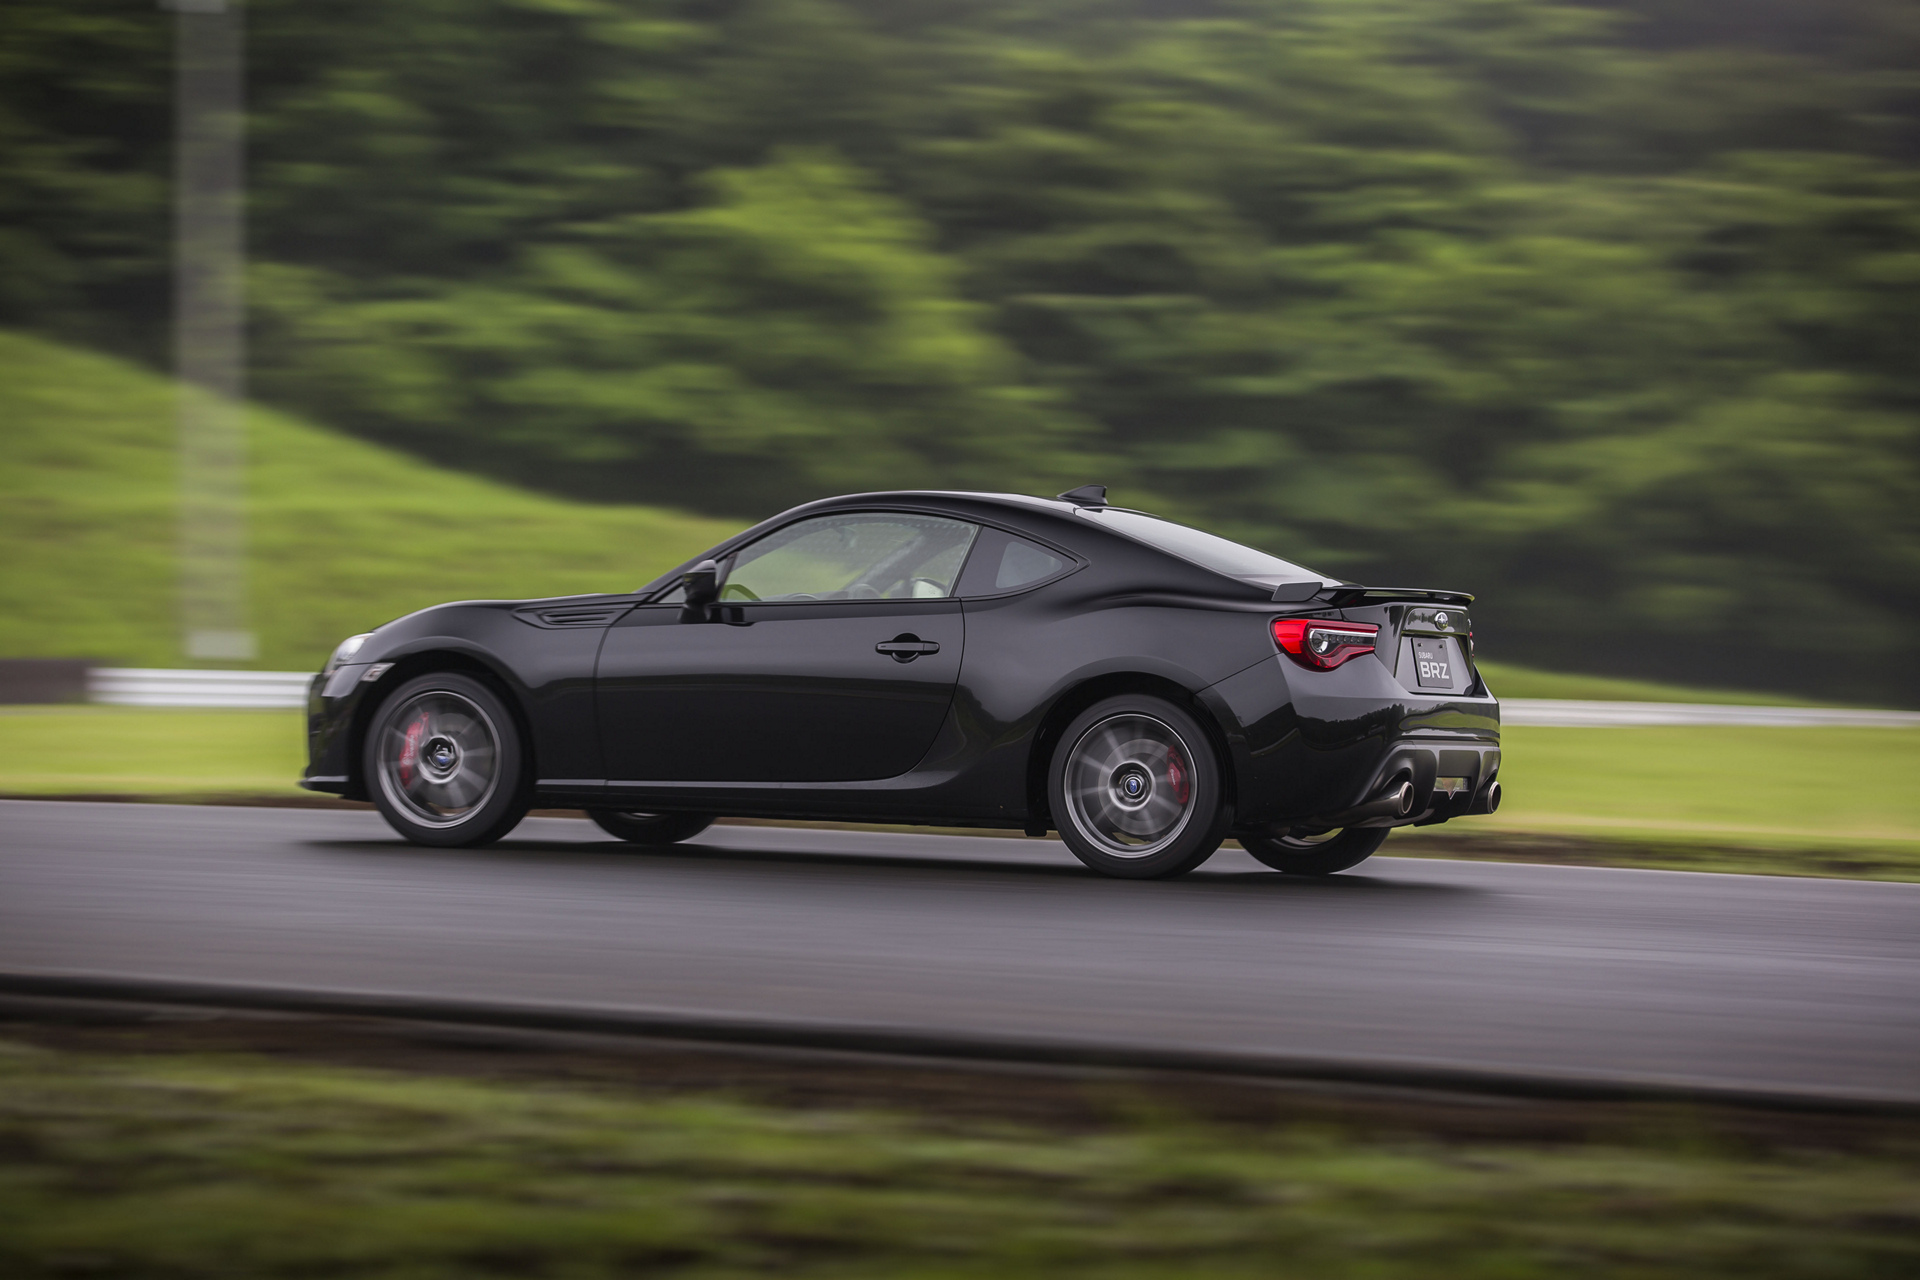 2017 Subaru BRZ ©Fuji Heavy Industries, Ltd.